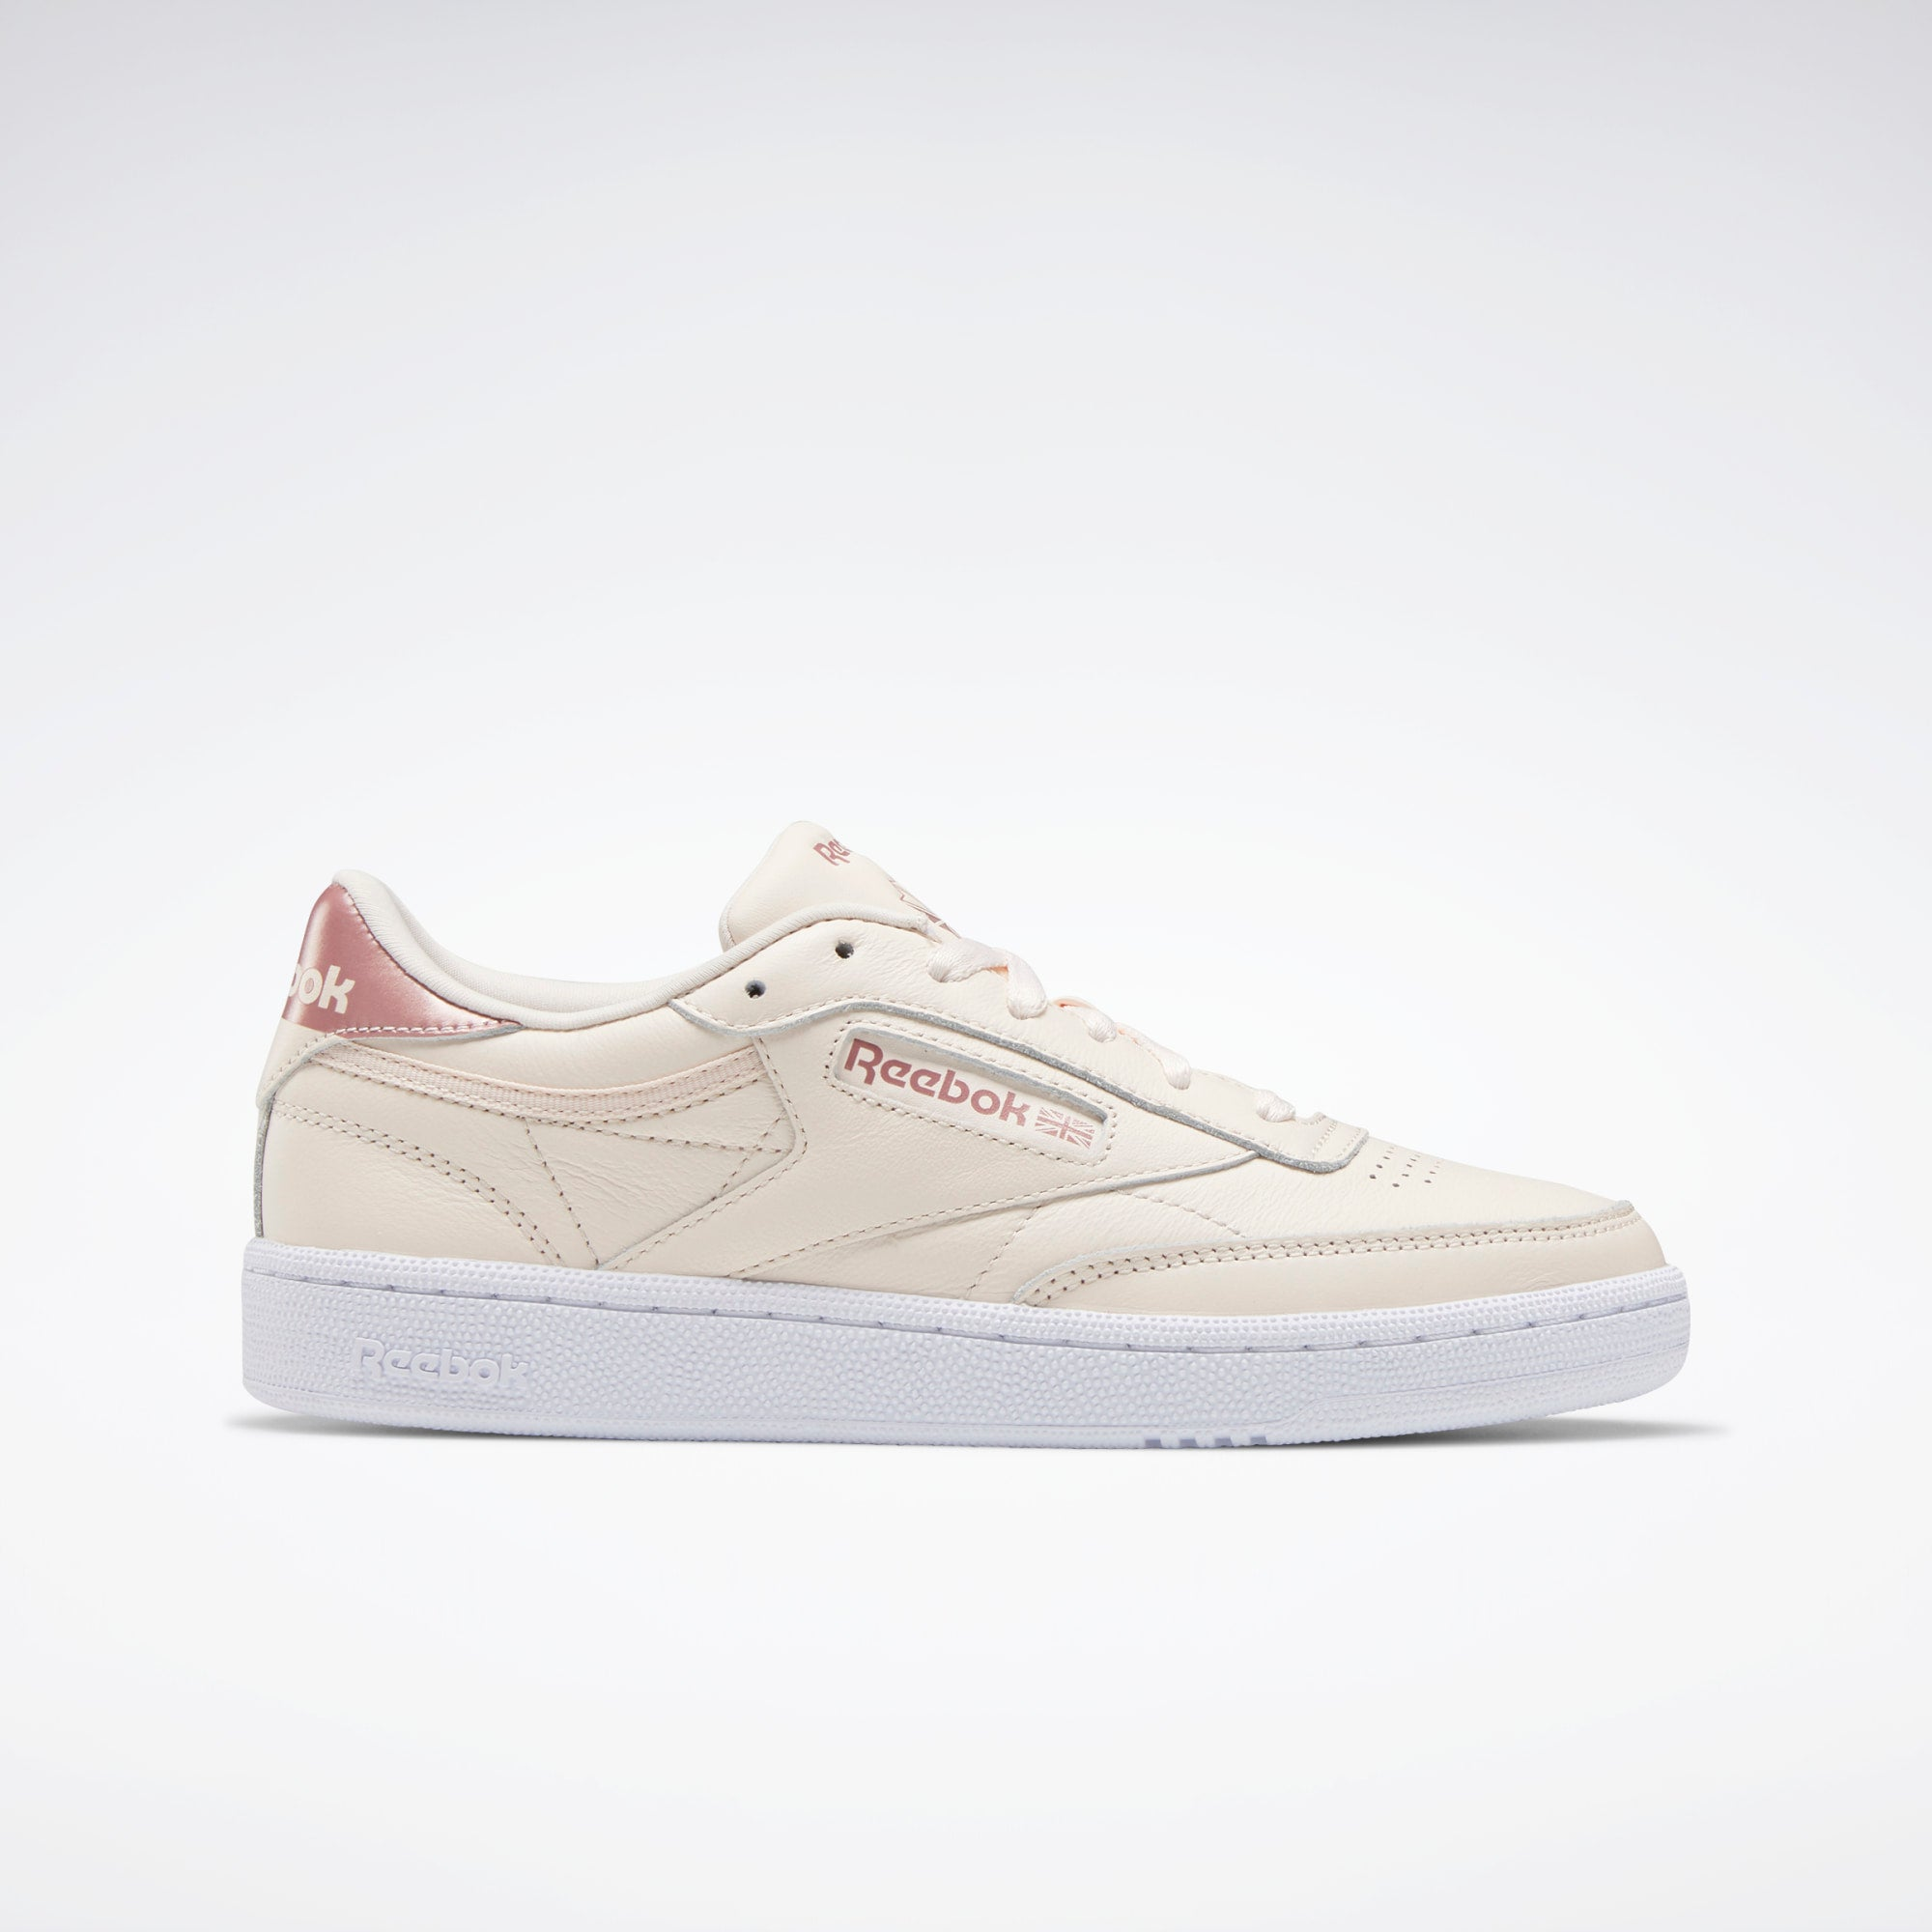 Reebok Womens Club C 85 - Ceramic Pink